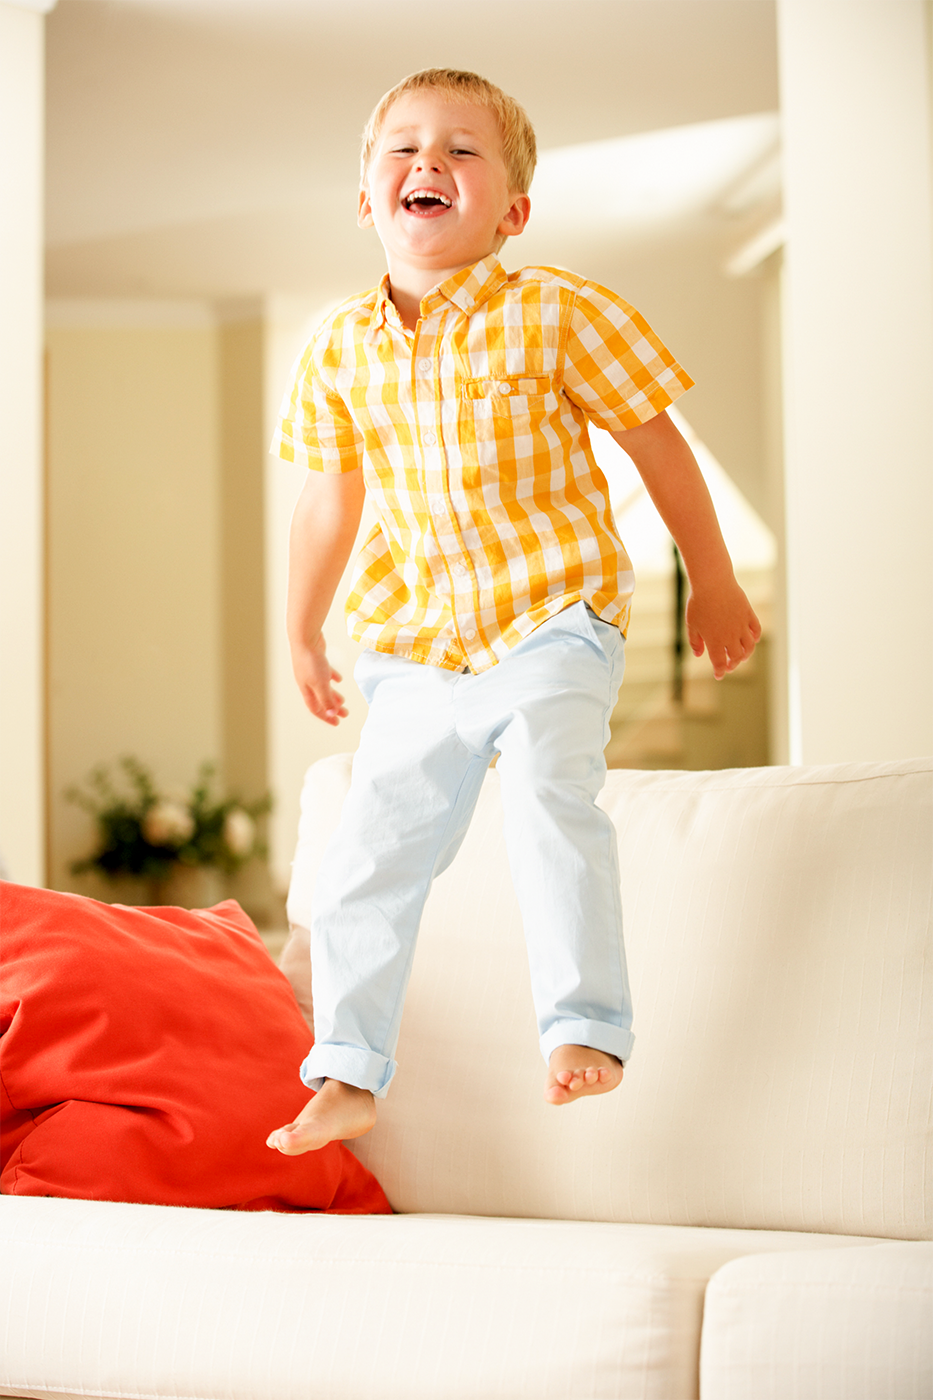 Little boy in a yellow shirt jumping on the couch